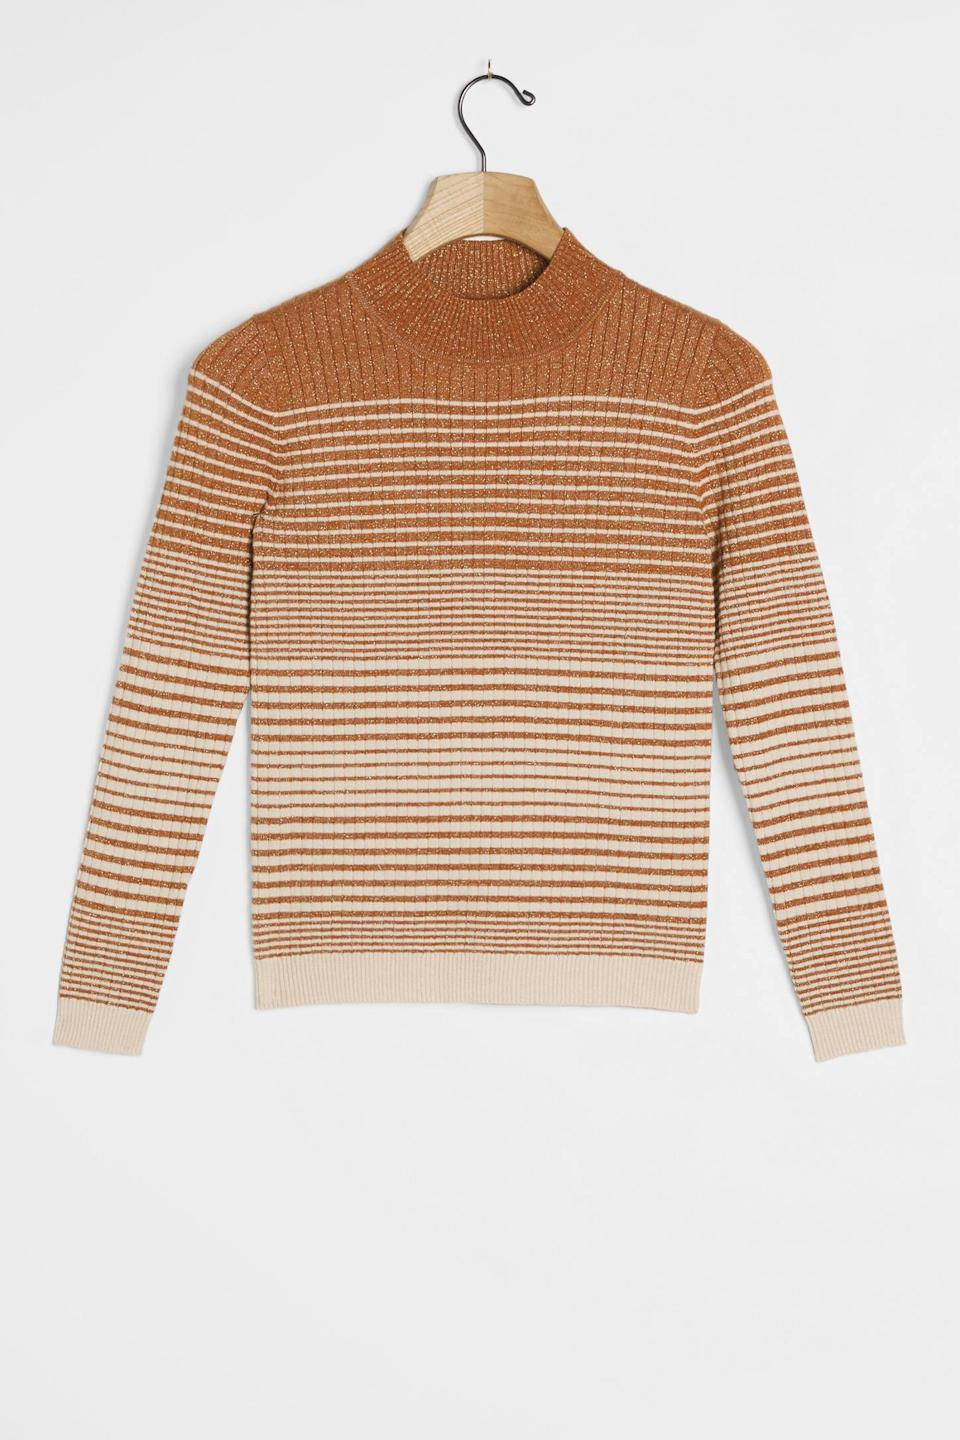 """<h2>Bonnie Shimmer Mock Neck Sweater<br></h2><br>The vintage school-girl aesthetic gets a major upgrade thanks to shiny, shimmery Lurex threaded throughout the weave of this close-cropped pullover.<br><br><strong>Heartloom</strong> Bonnie Shimmer Mock Neck Sweater, $, available at <a href=""""https://go.skimresources.com/?id=30283X879131&url=https%3A%2F%2Fwww.anthropologie.com%2Fshop%2Fbonnie-shimmer-mock-neck-sweater%3Fcategory%3Dtops-sweaters%26color%3D025%26type%3DSTANDARD%26quantity%3D1"""" rel=""""nofollow noopener"""" target=""""_blank"""" data-ylk=""""slk:Anthropologie"""" class=""""link rapid-noclick-resp"""">Anthropologie</a>"""